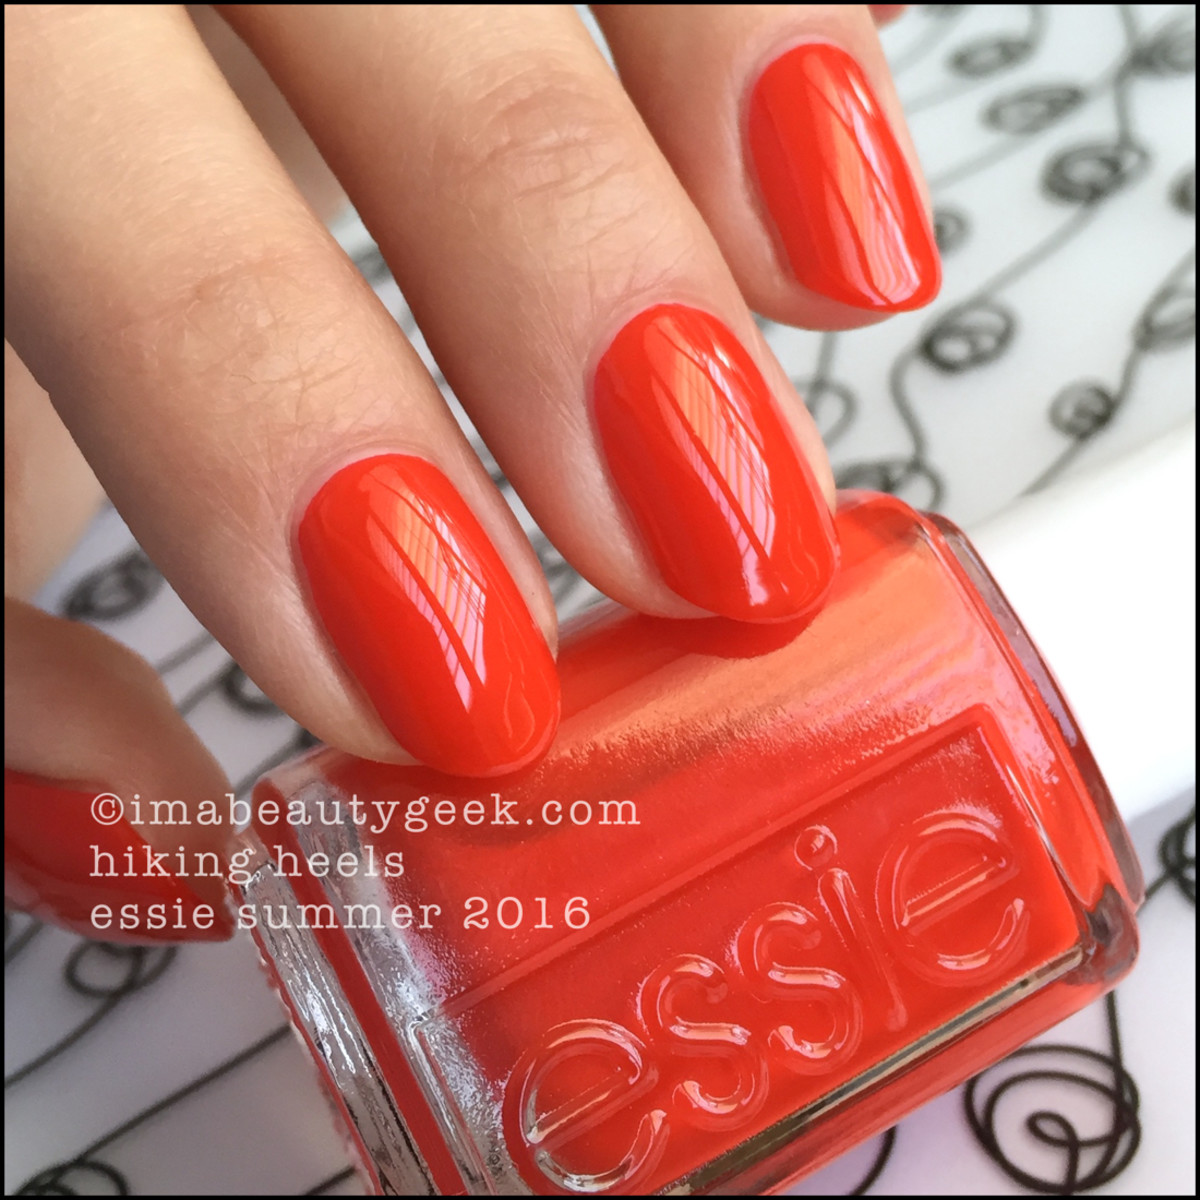 Essie Hiking Heels_Essie Summer 2016 Review Swatches